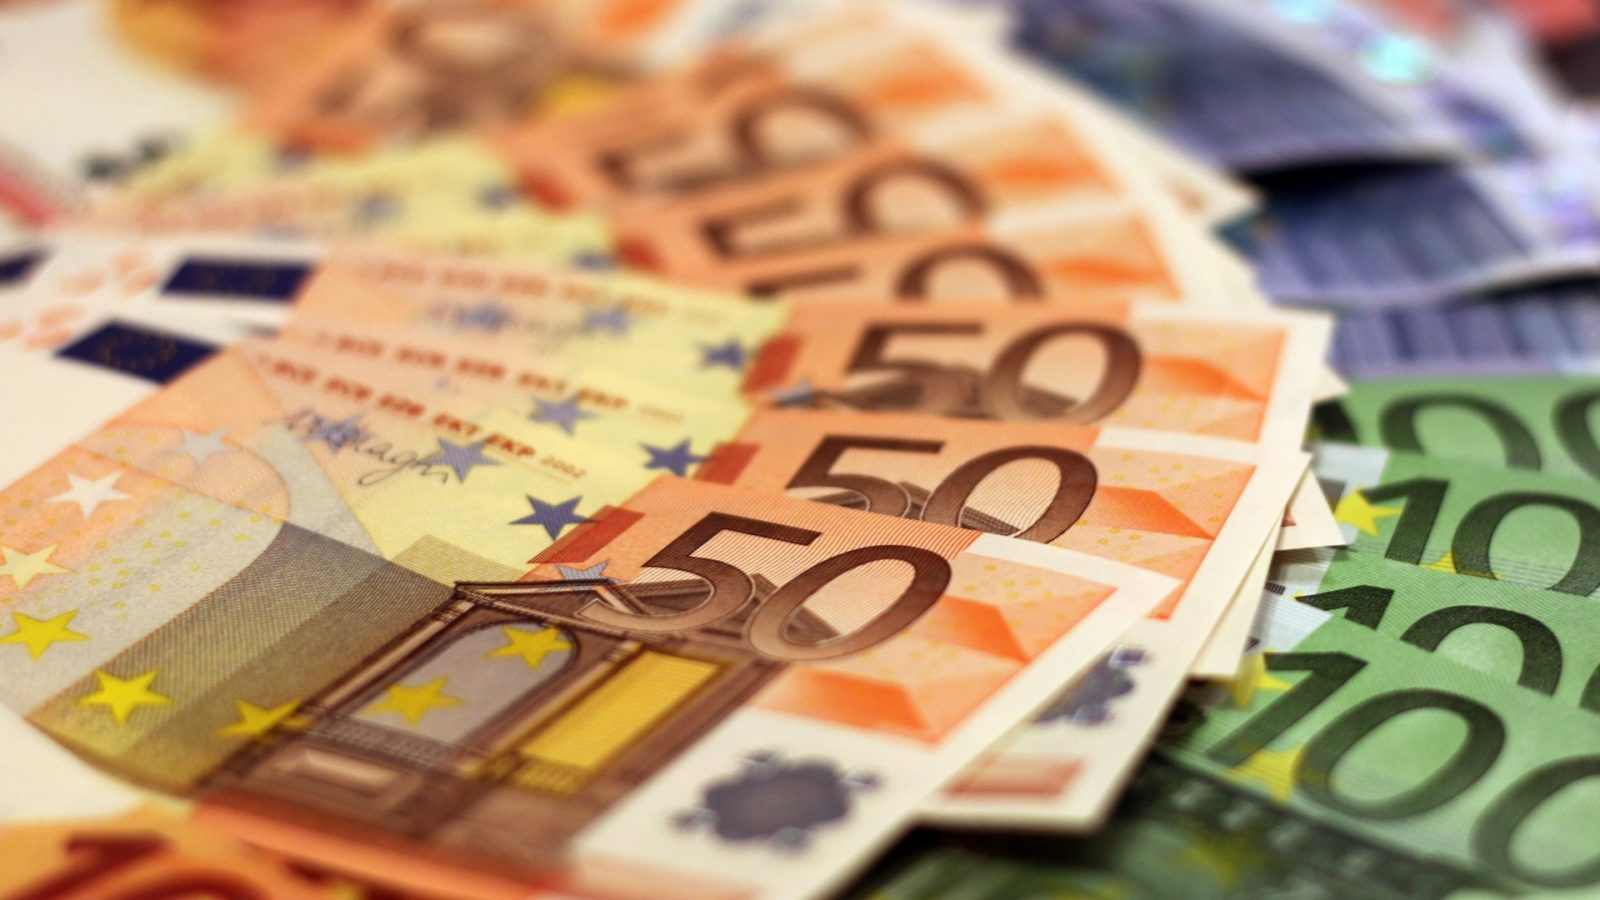 A stack of euros.